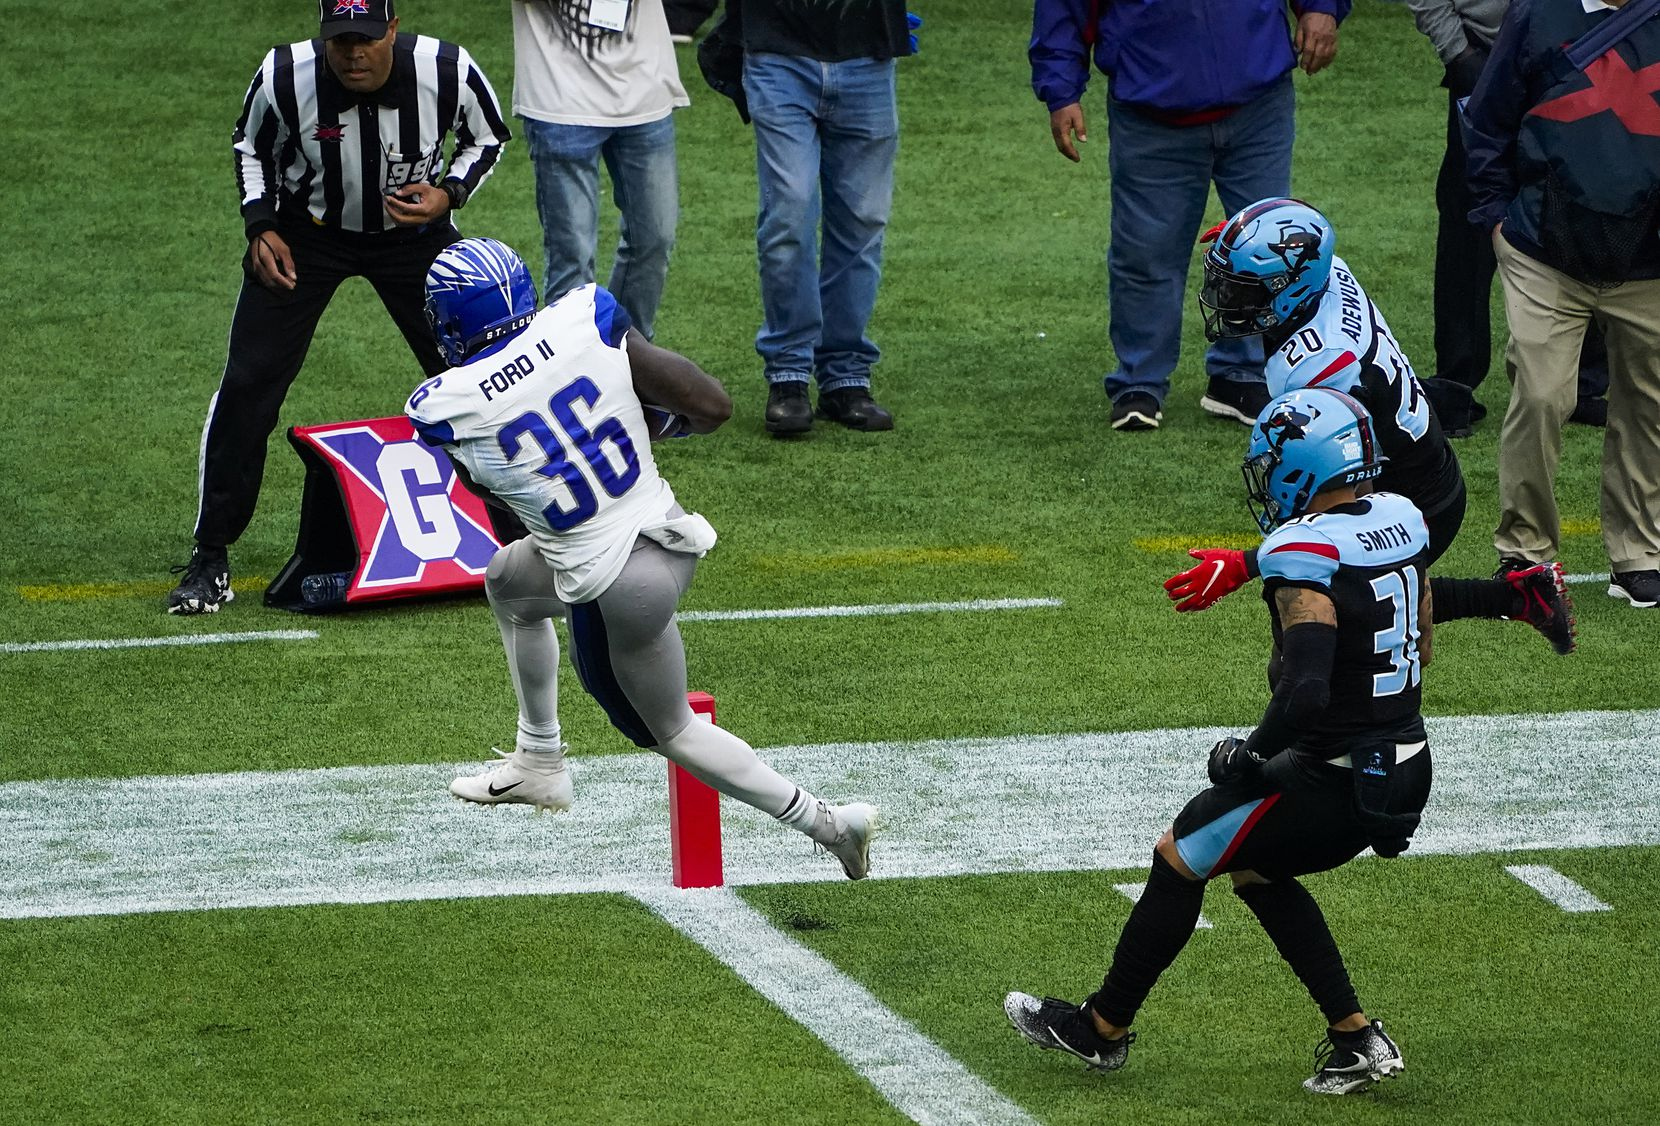 St. Louis Battlehawks running back Keith Ford (36) scores on a 16-yard touchdown run past Dallas Renegades safety Derron Smith (31) and safety Tenny Adewusi (20) during the first half of an XFL football game at Globe Life Park on Sunday, Feb. 9, 2020, in Arlington.